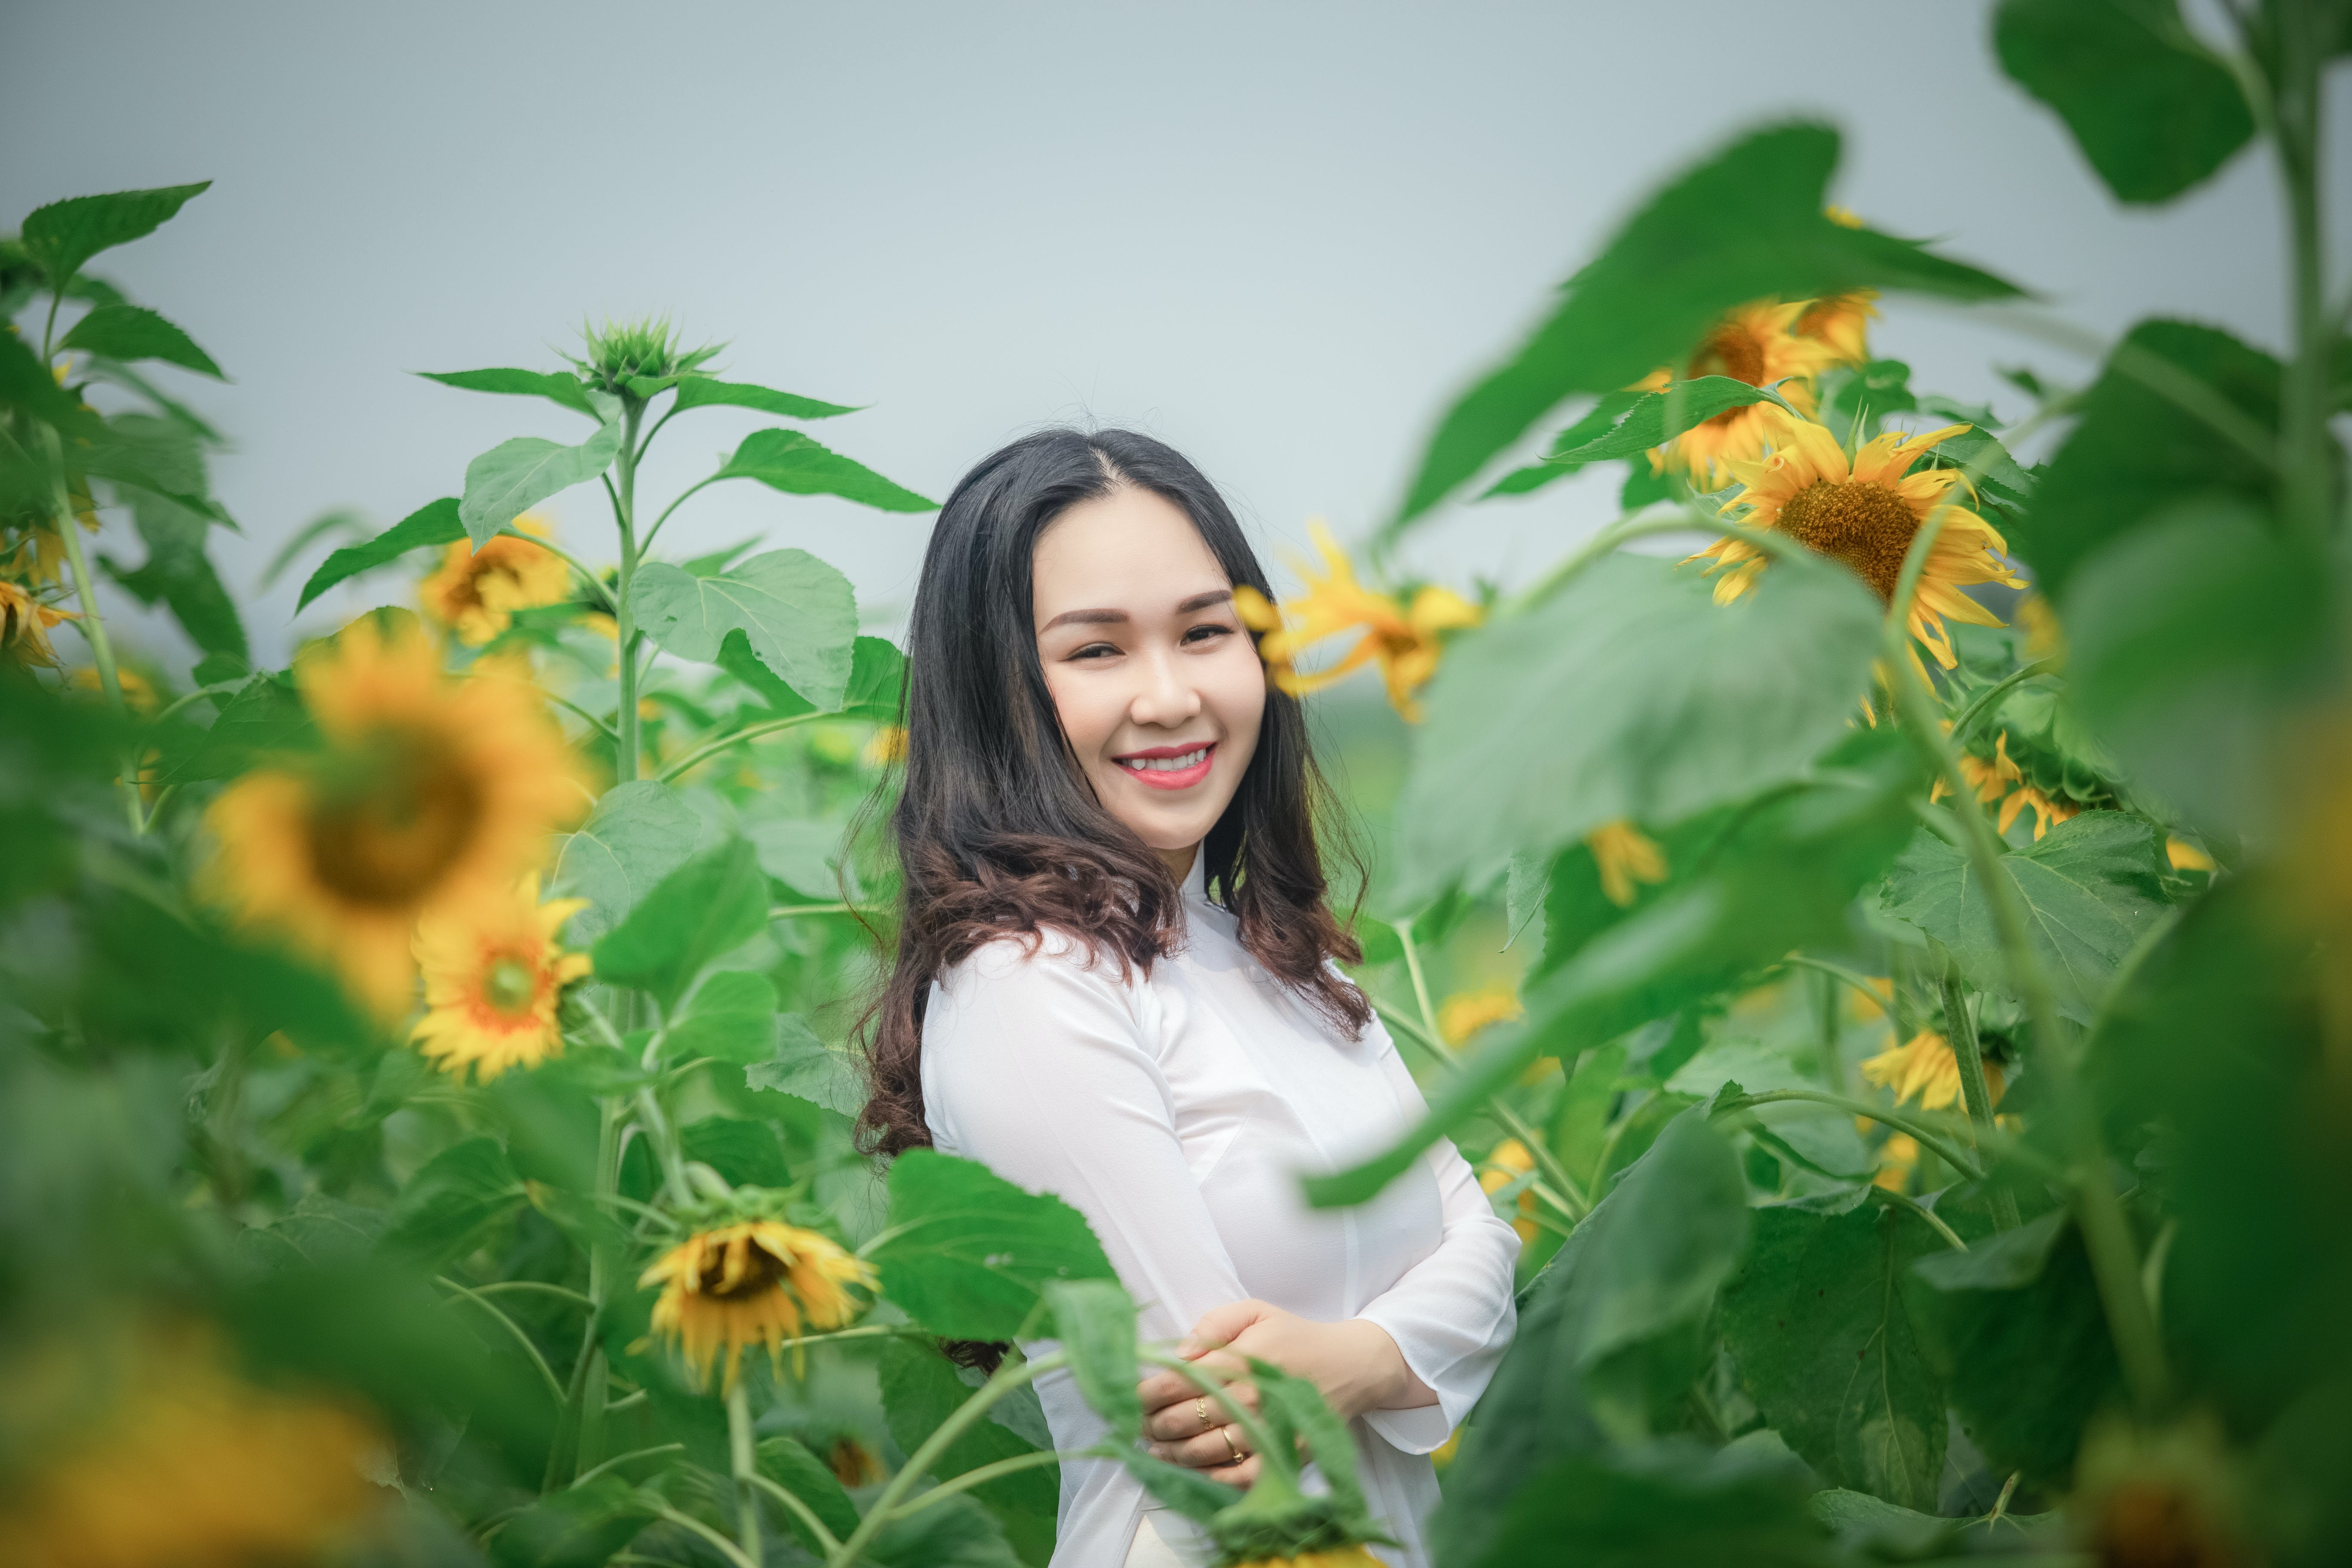 Woman Wearing White Shirt Standing Near Sunflower Field While Smiling